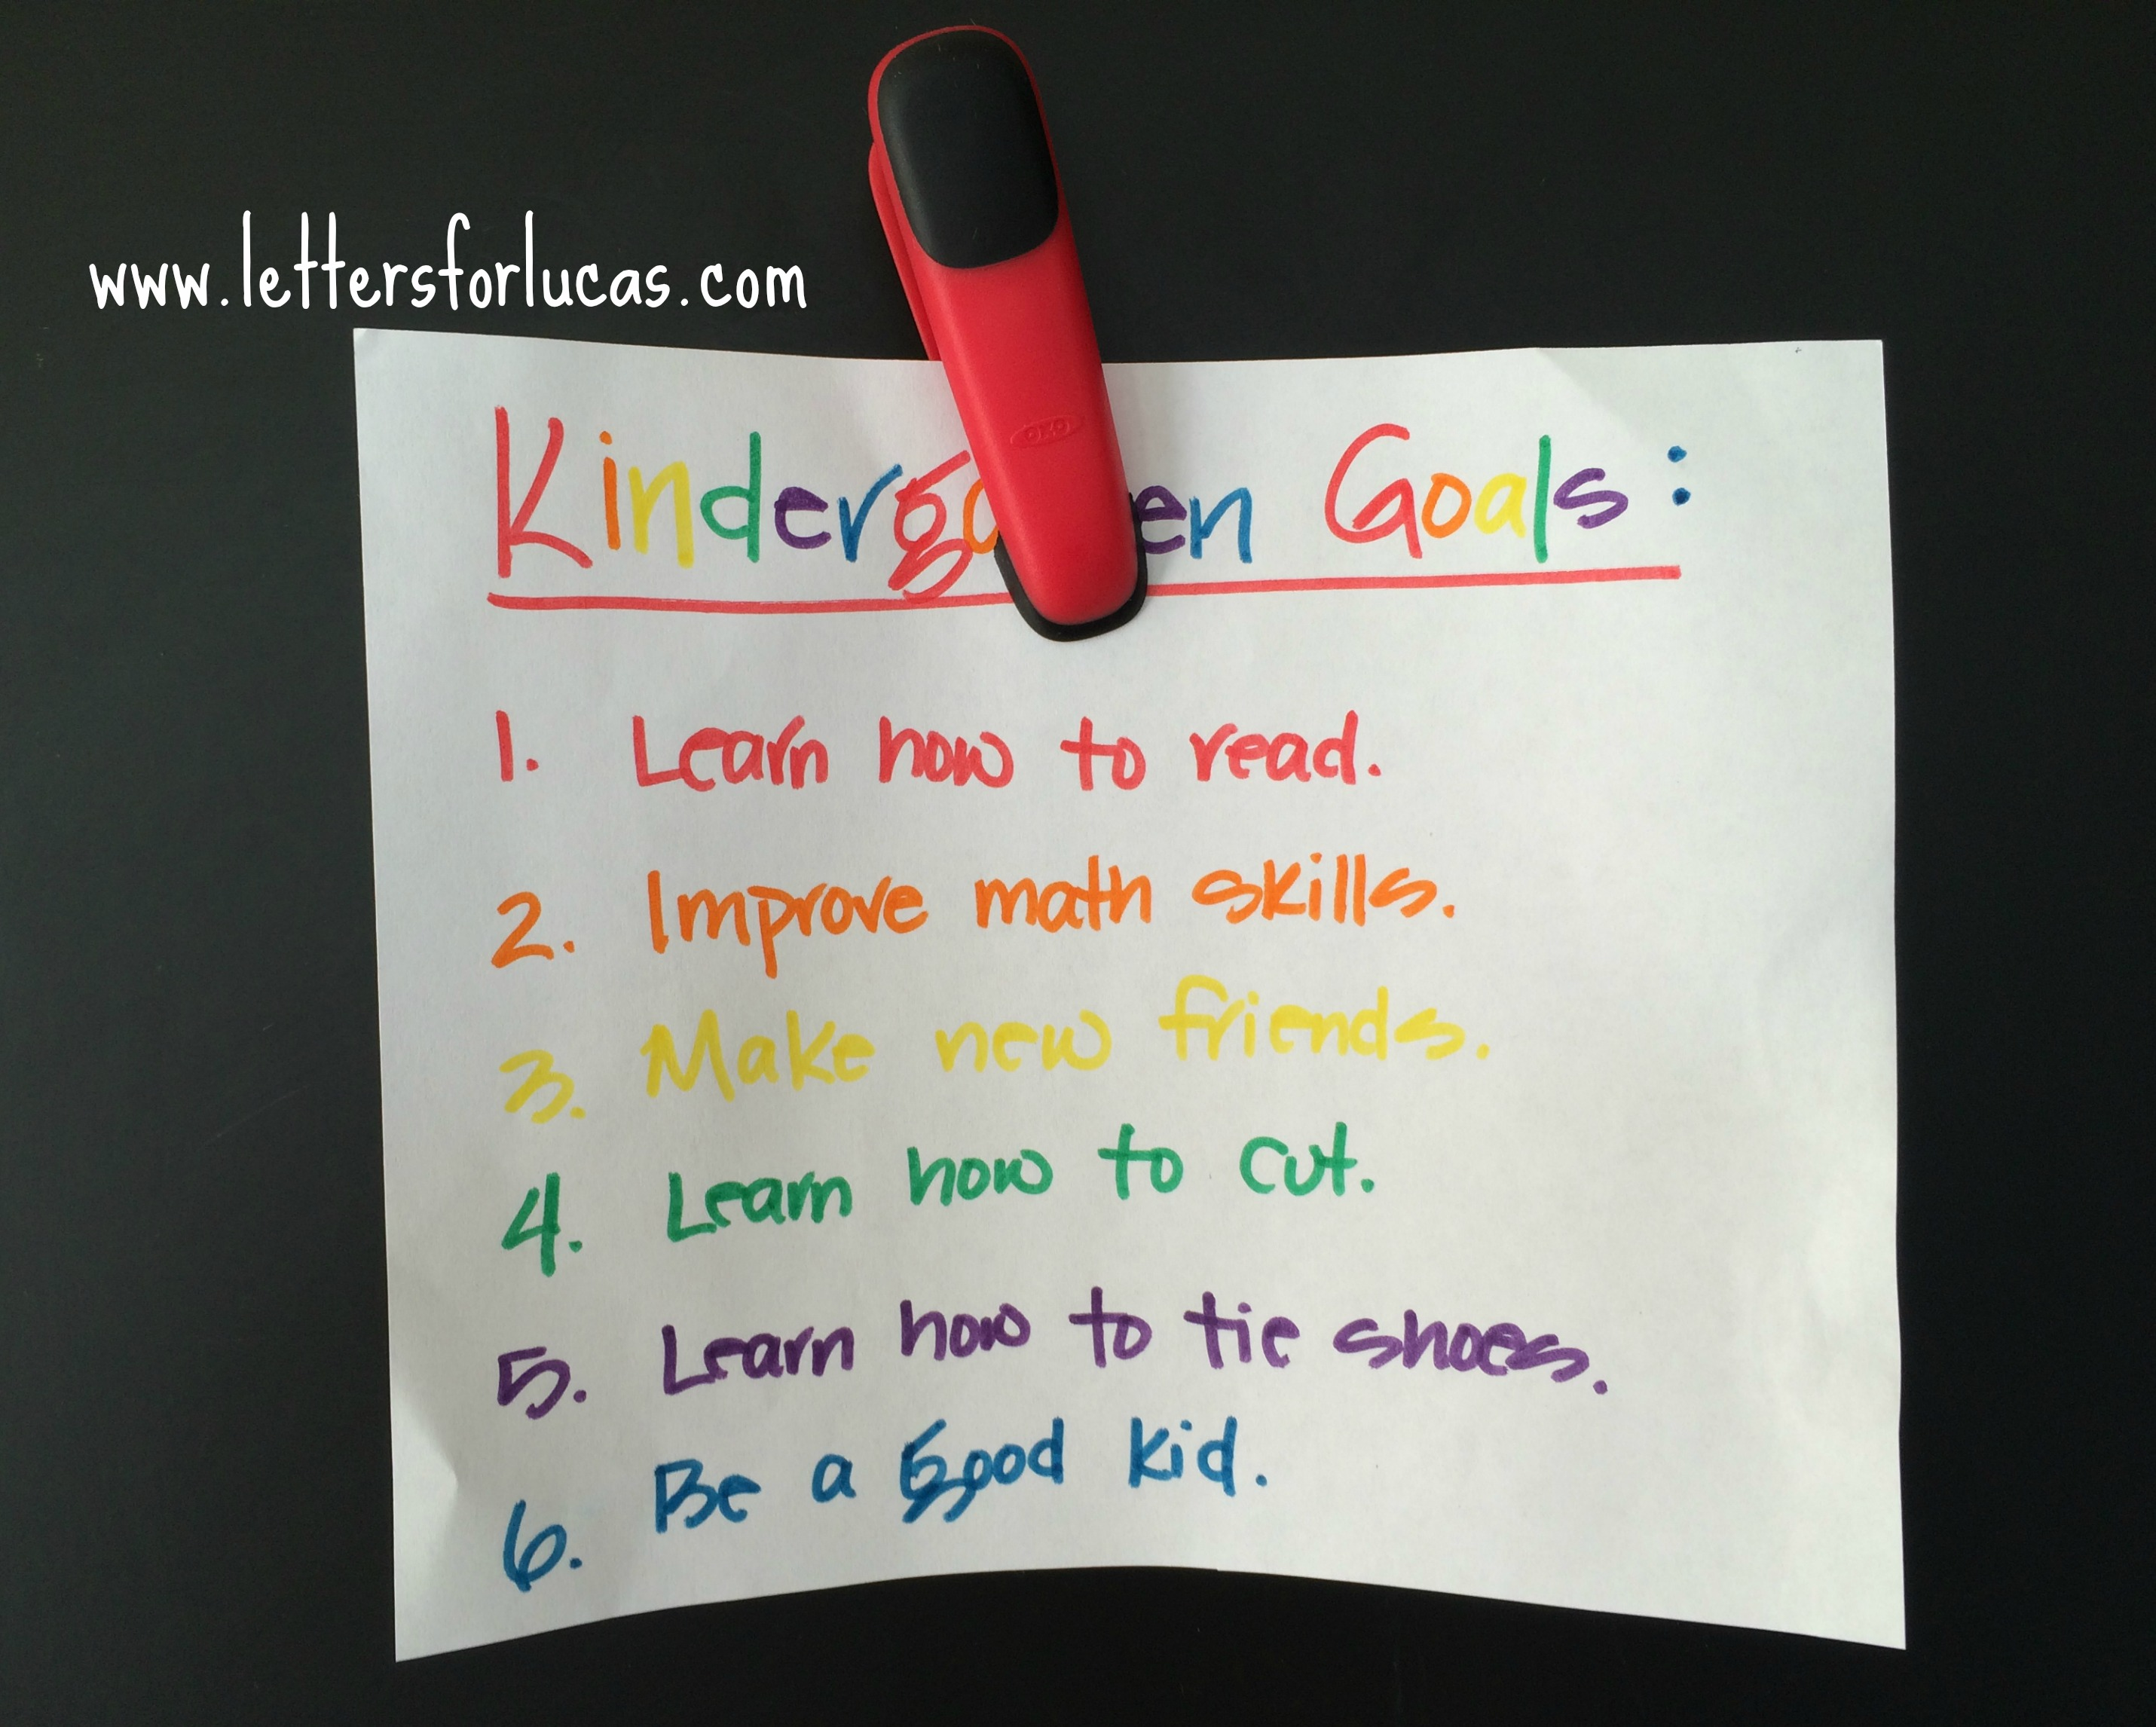 kindergartengoals